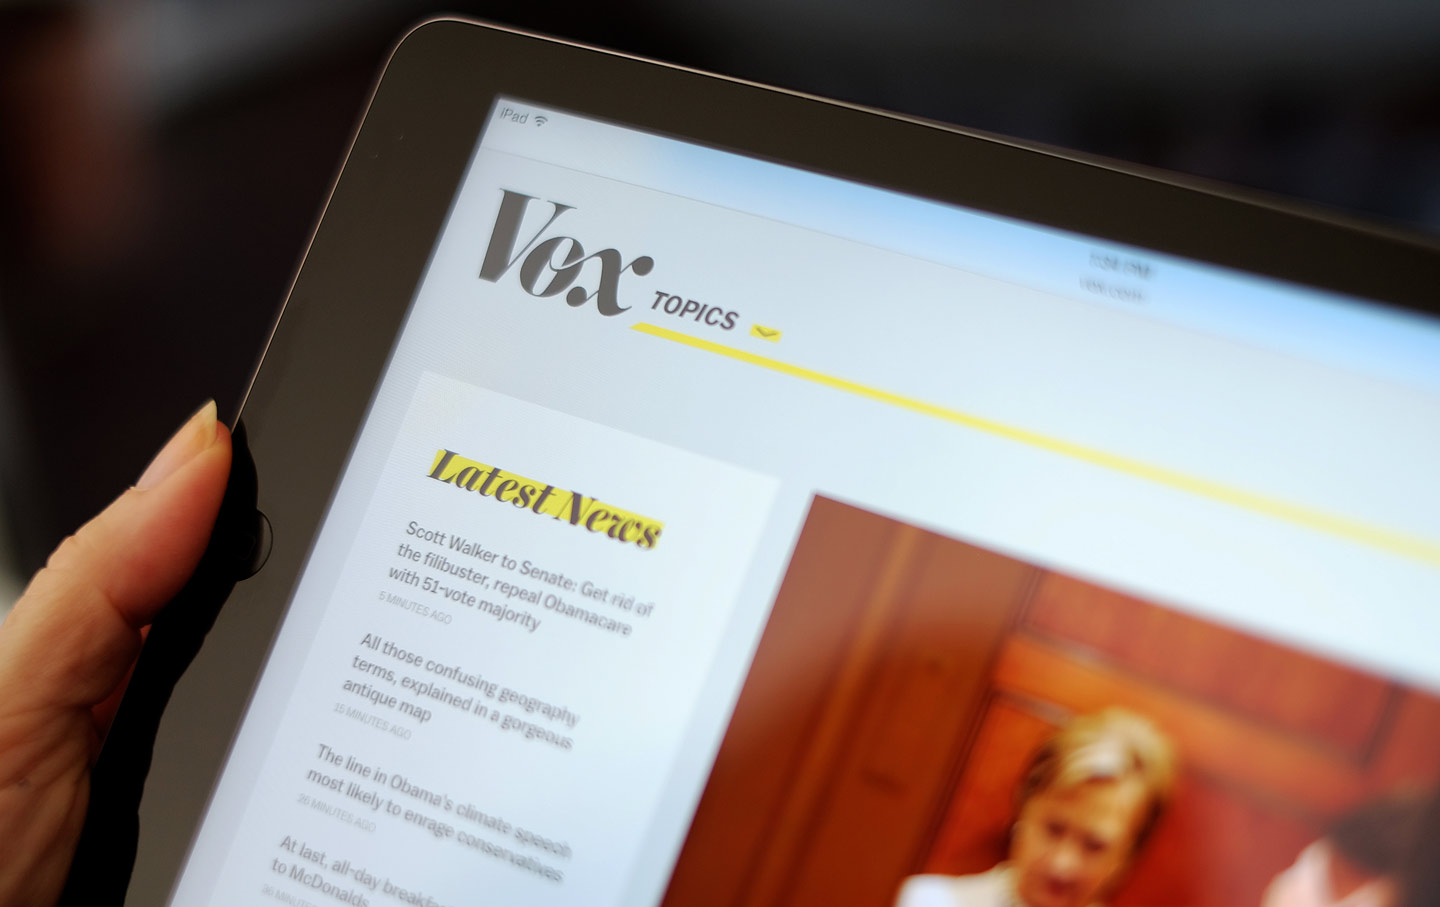 Vox's website on an iPad